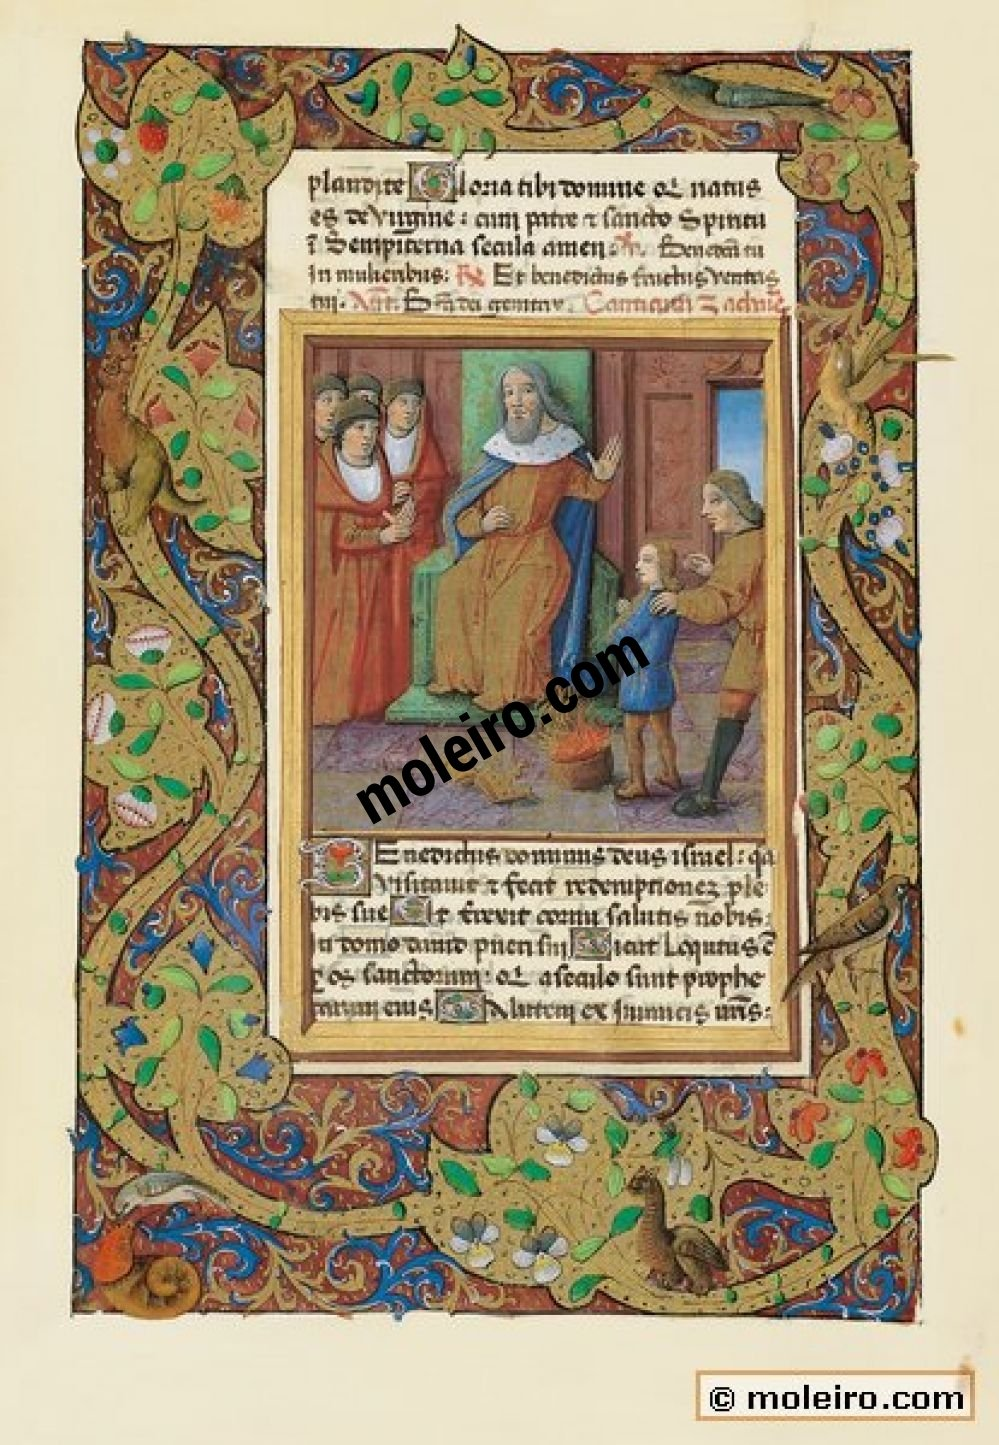 Book of Hours of Louis of Orleans f. 23v,The boy Moses throws the pharaoh's crown. The trial by fire